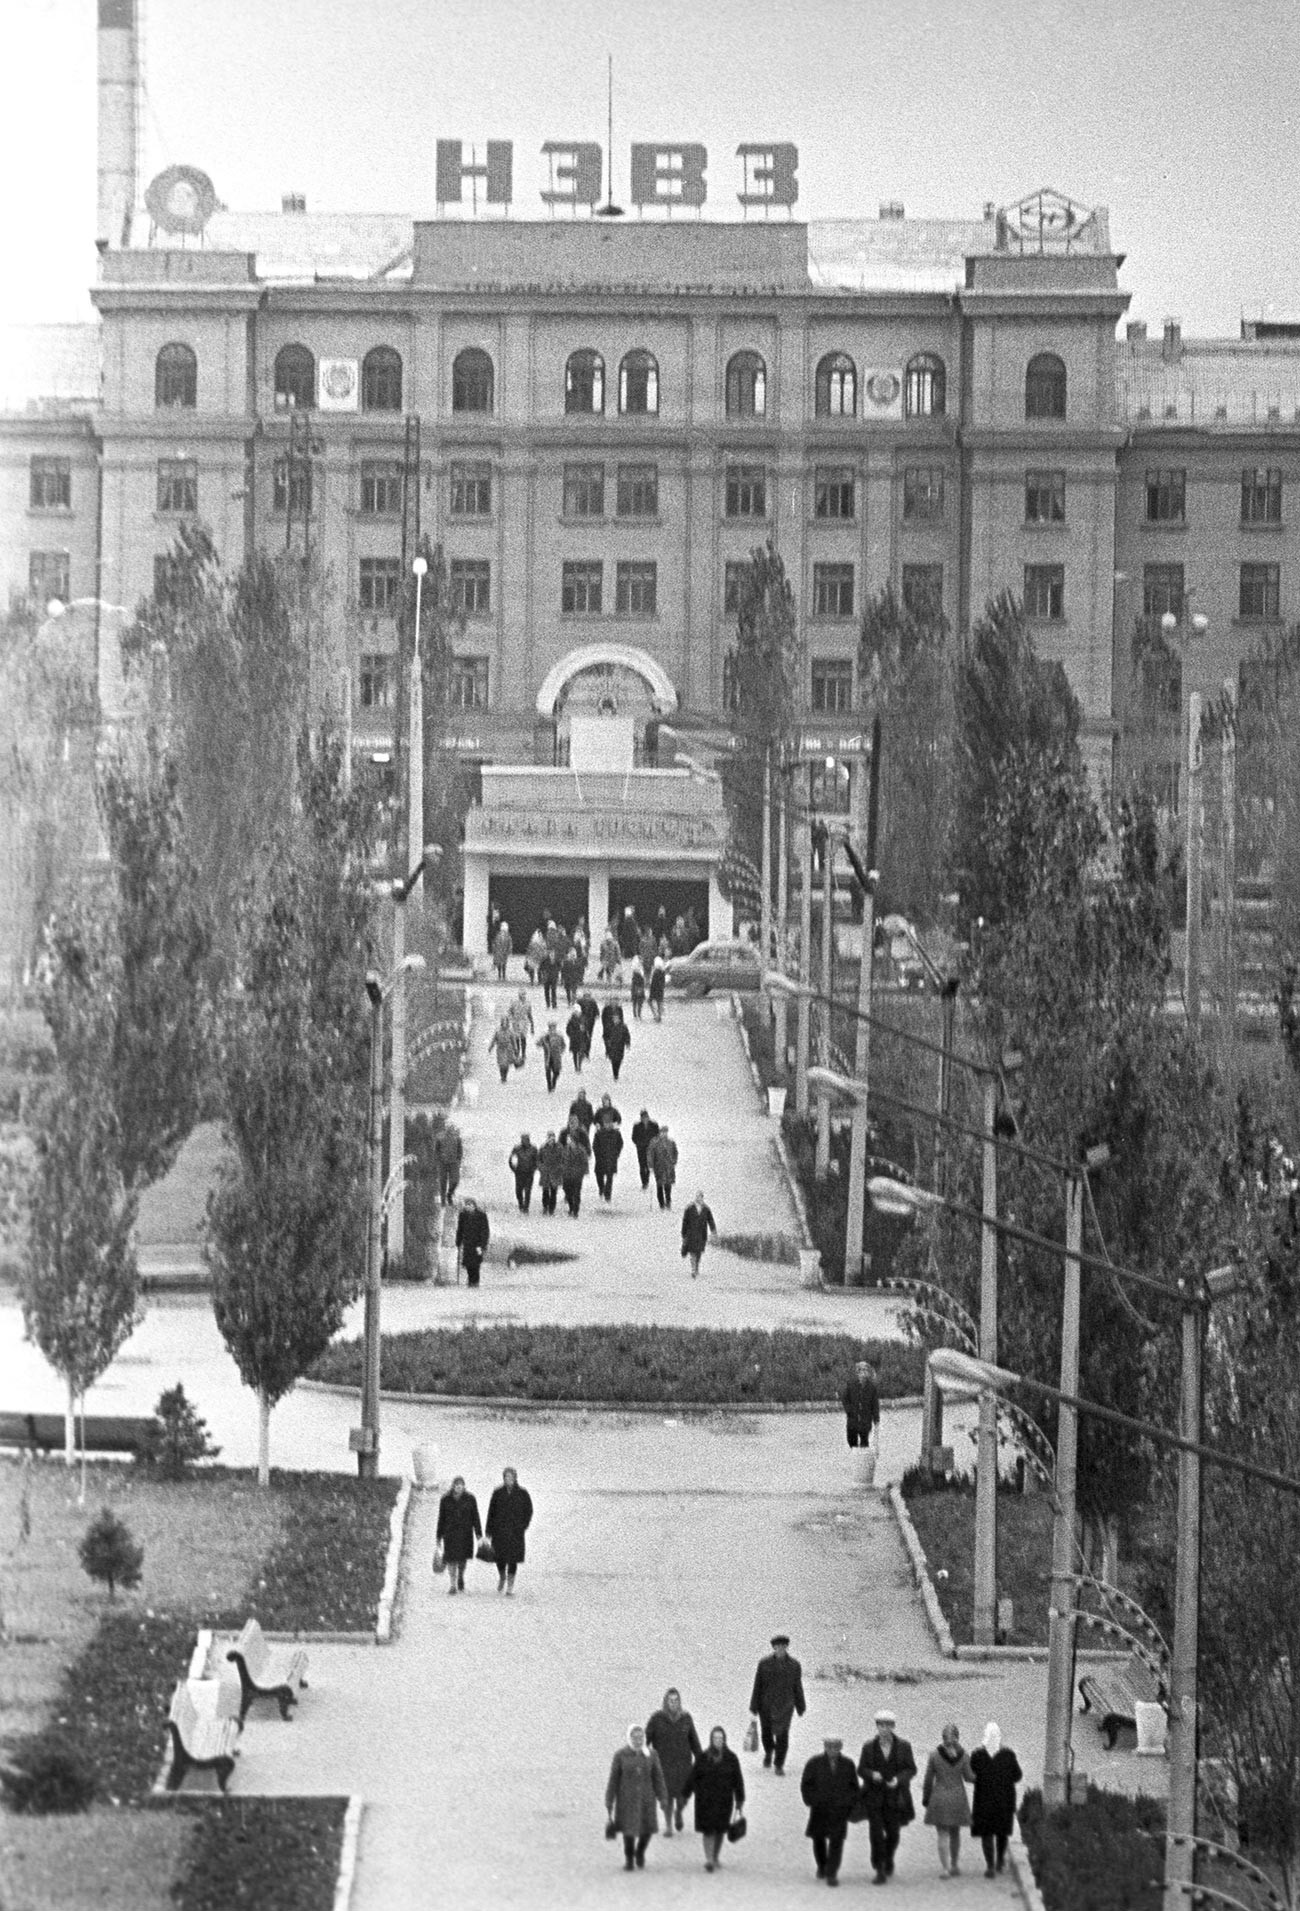 The Novocherkassk Electric Locomotive Plant's main perspective and public garden, where the strike began